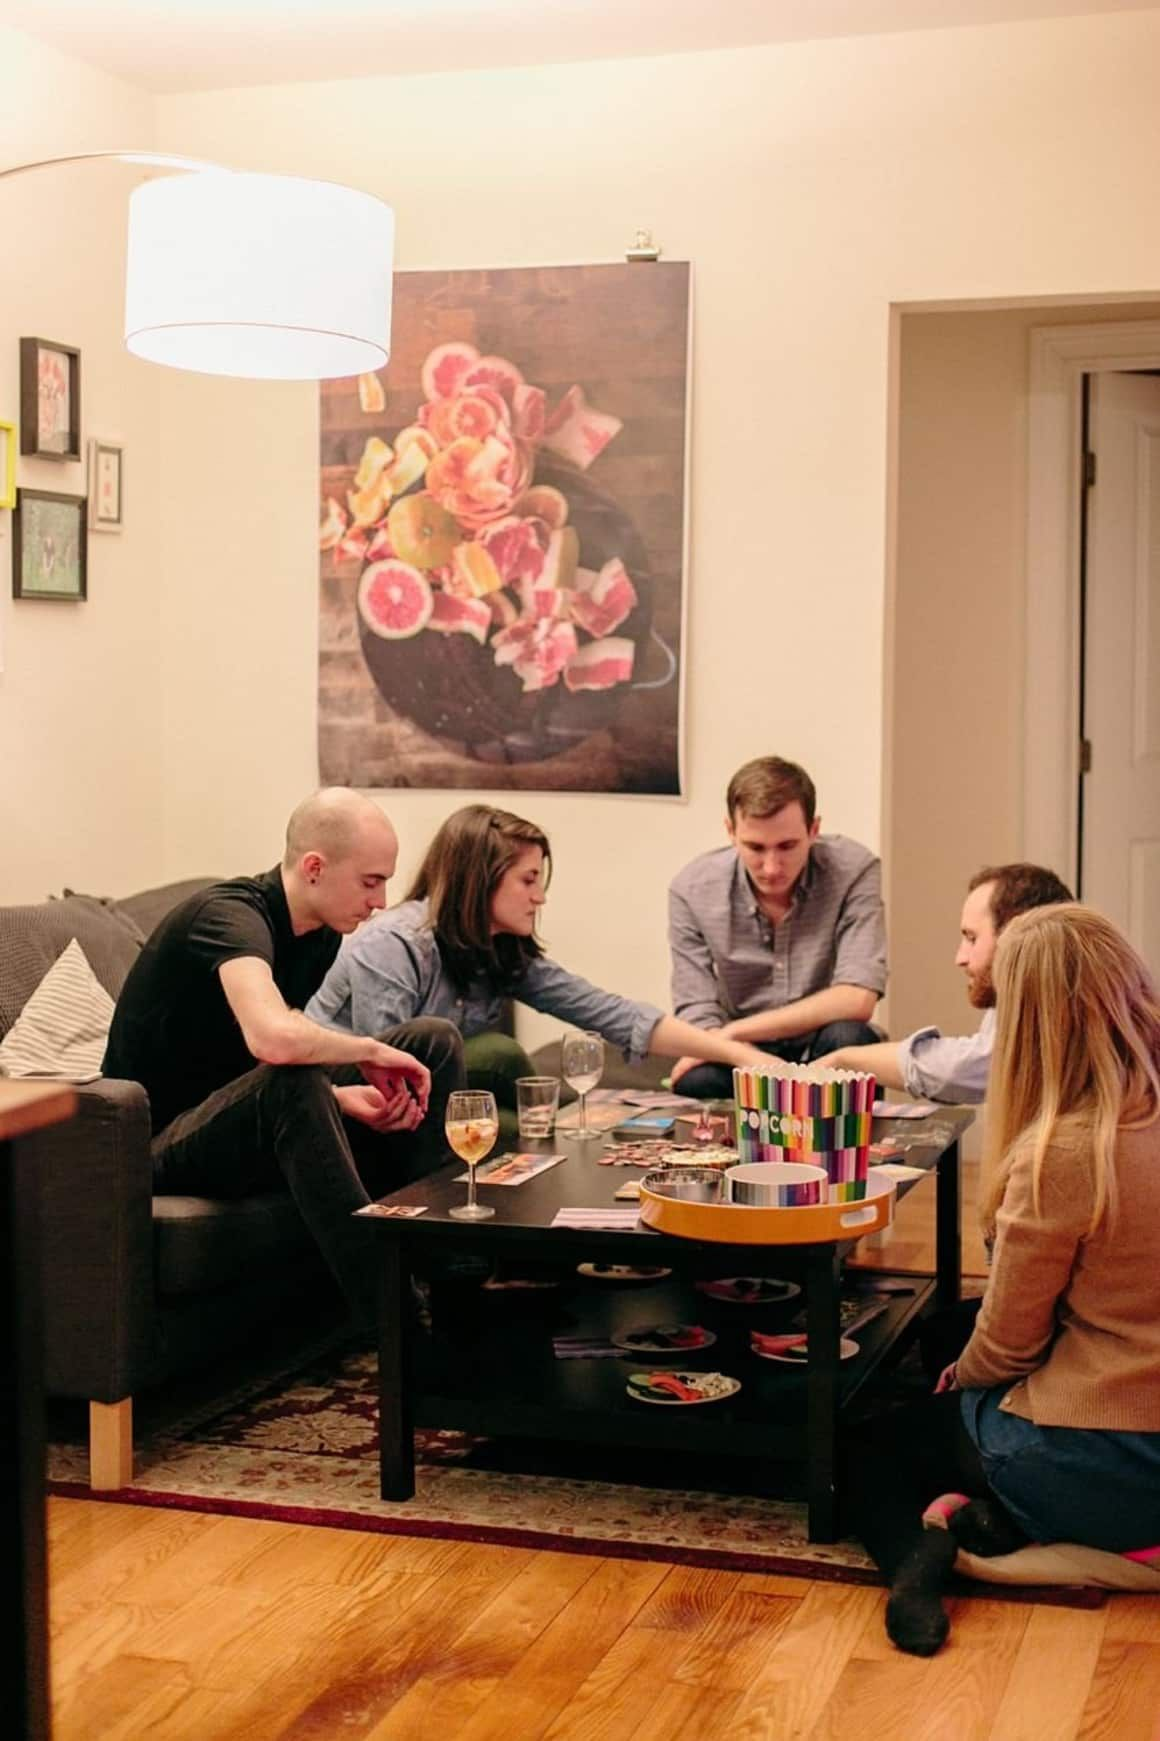 11 Games to Play on New Year's Day Board game night